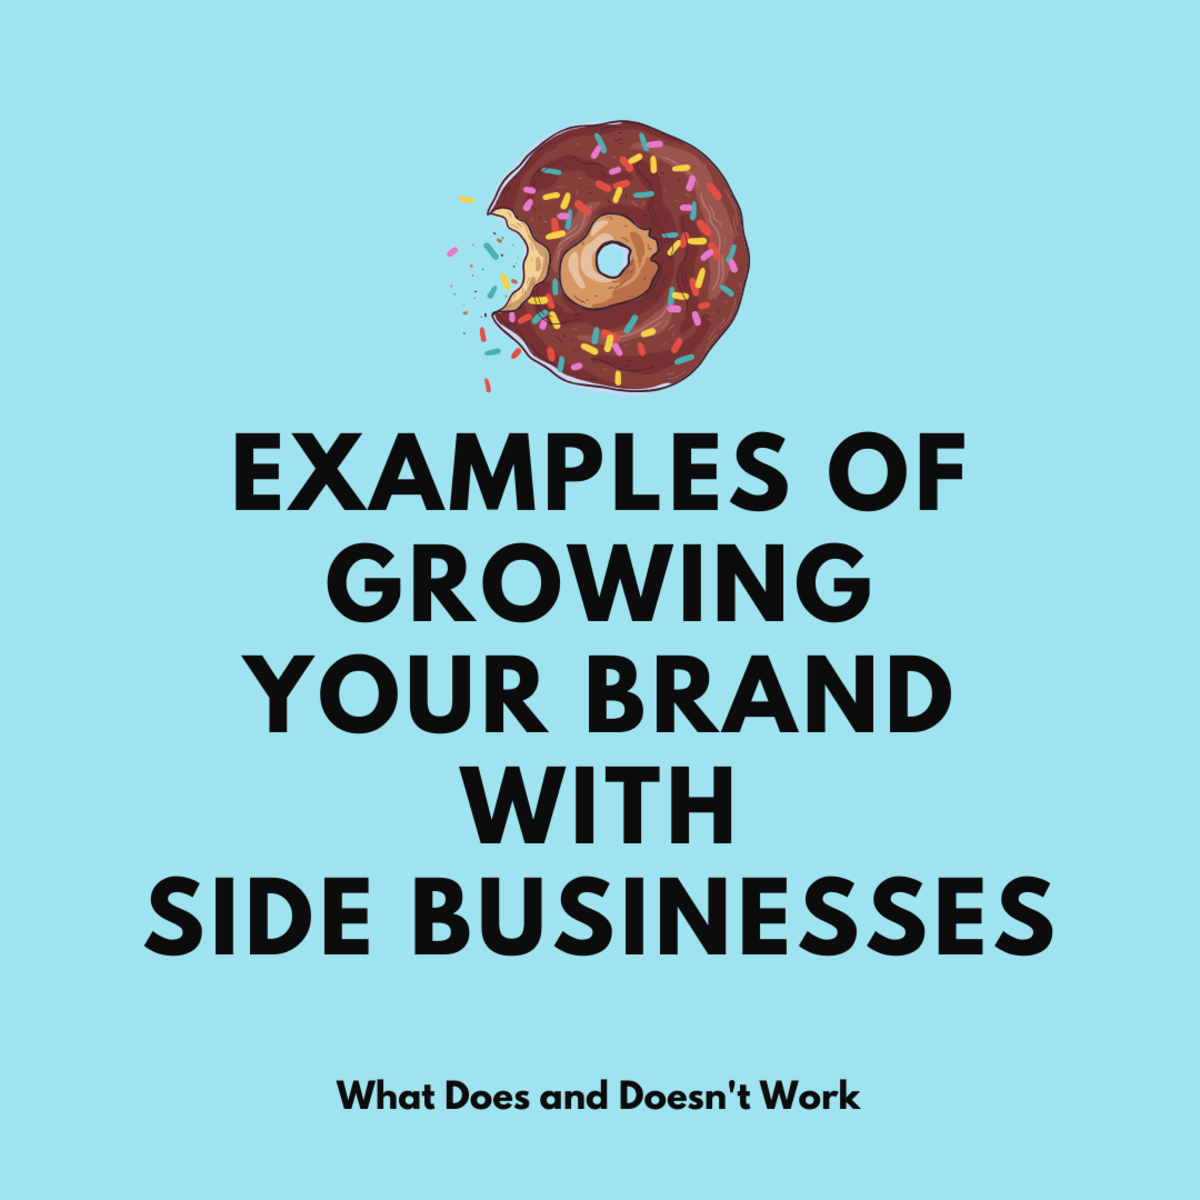 How to Use Side Businesses to Grow Your Brand: Case Studies